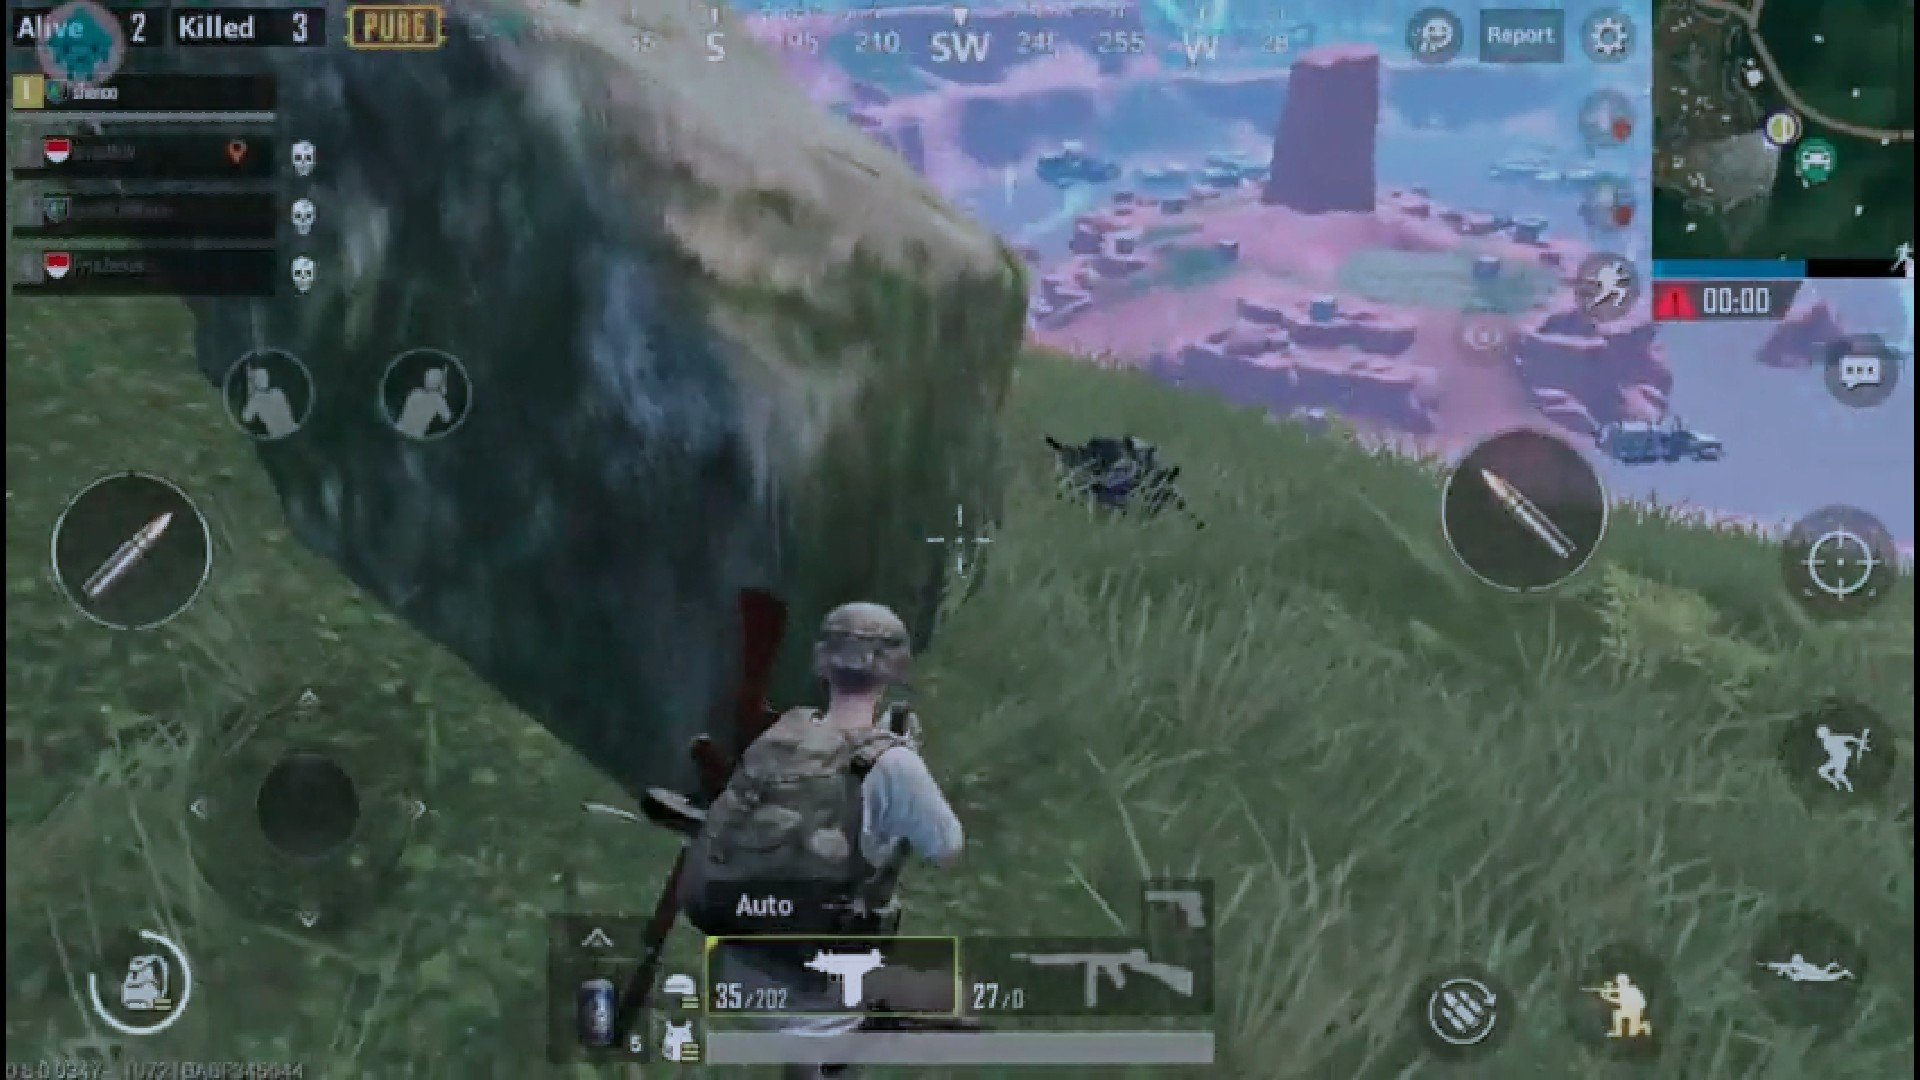 Check Out This Awesome Winner Winner Chicken Dinner Pubg: PUBG Lesson: Find A Rock And Prone